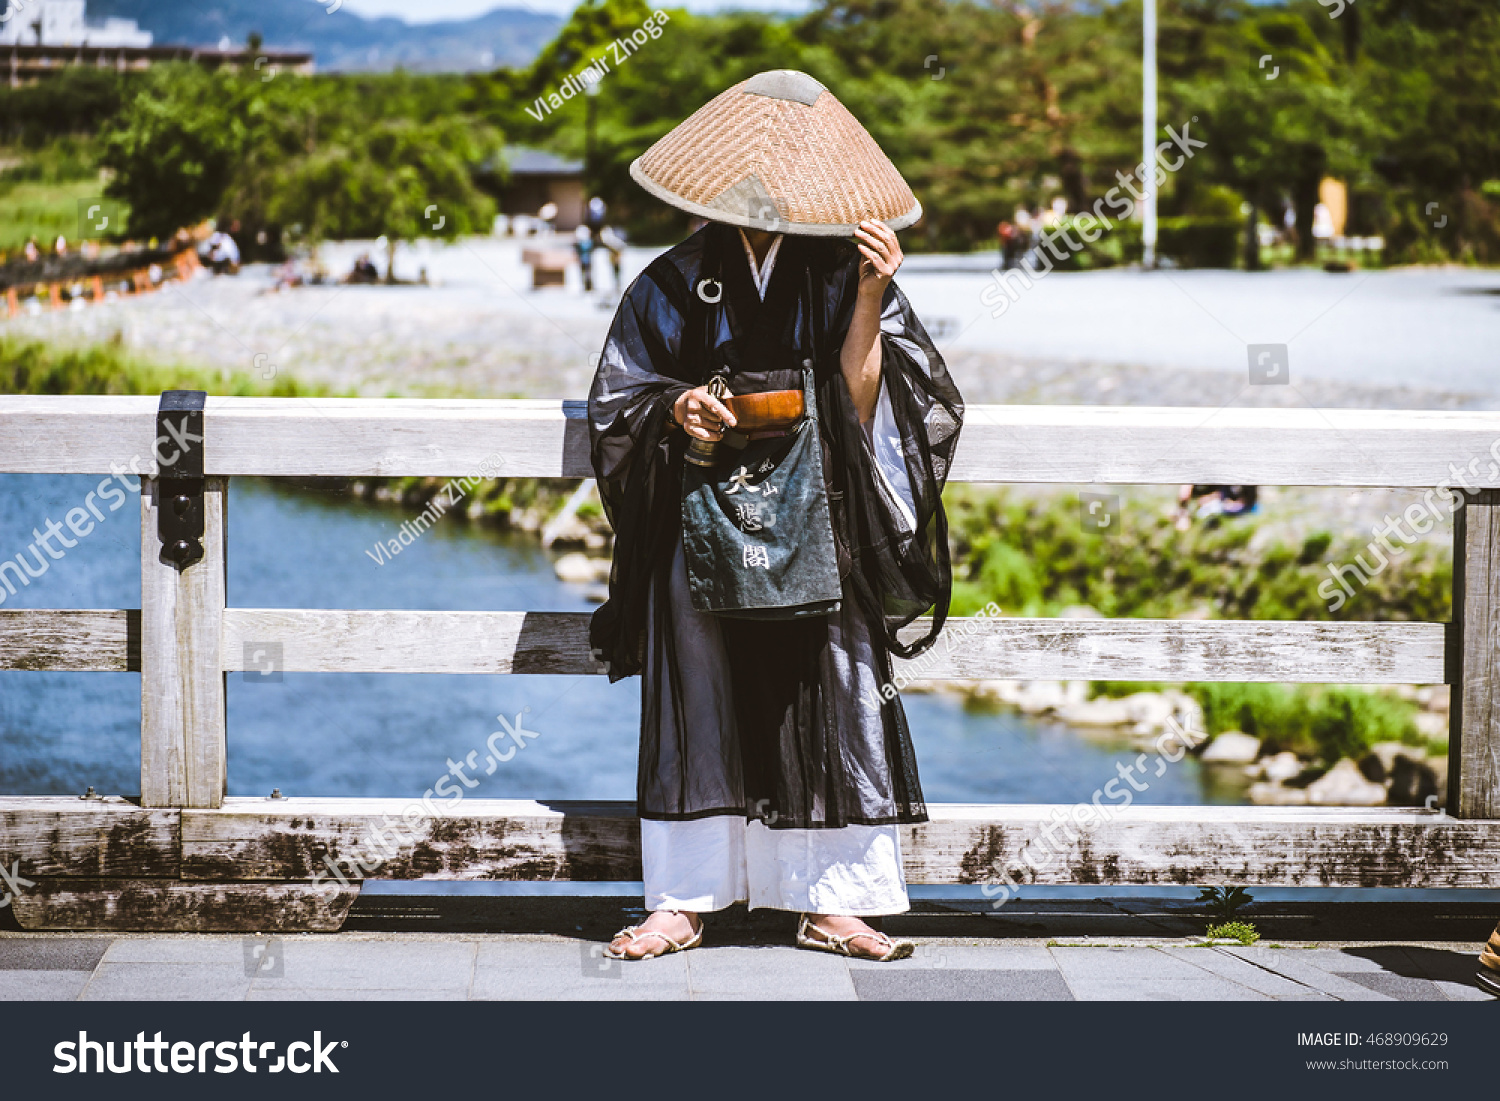 KYOTO JAPAN MAY 17 2014 Japanese artist wearing traditional costume and big hat hiding his face stands on the street of Kyoto with a wooden bowl